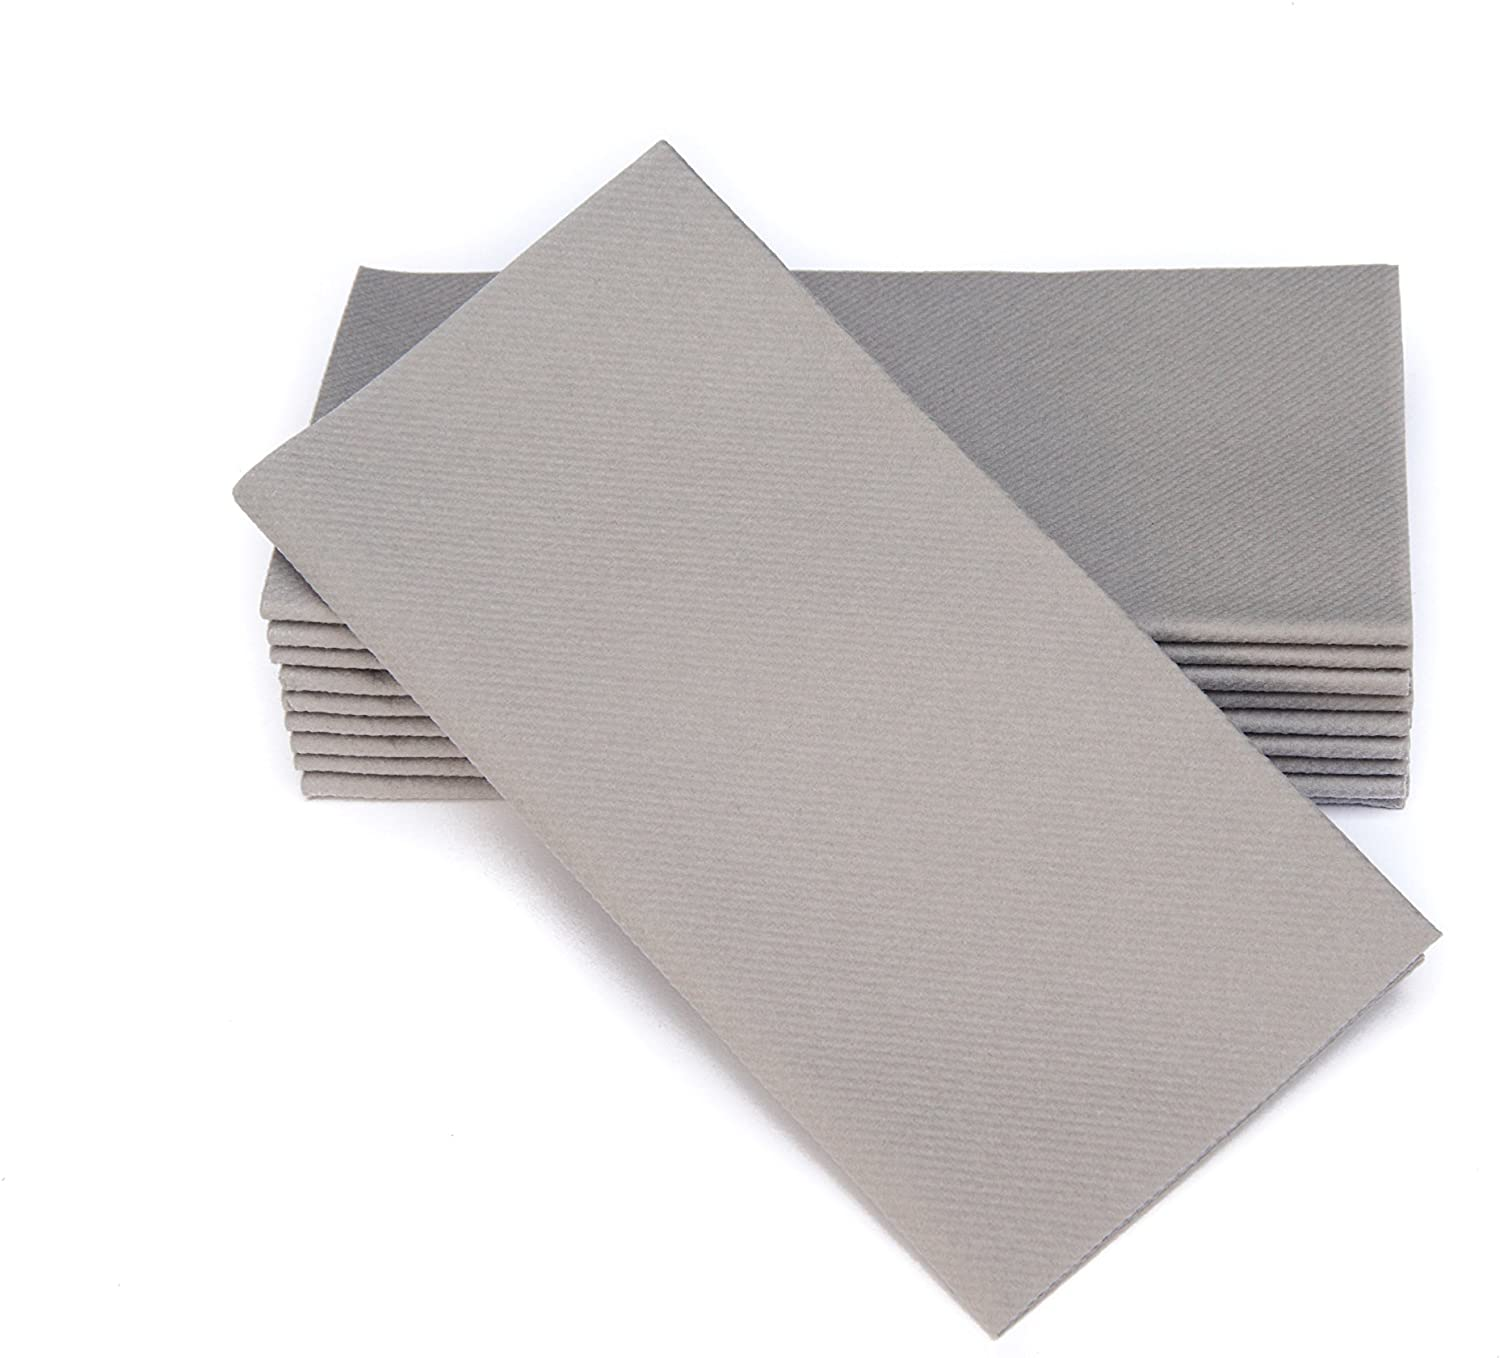 Simulinen Colored Napkins - Decorative Cloth Like & Disposable, Dinner Napkins - Rich Gray - Soft, Absorbent & Durable - 16